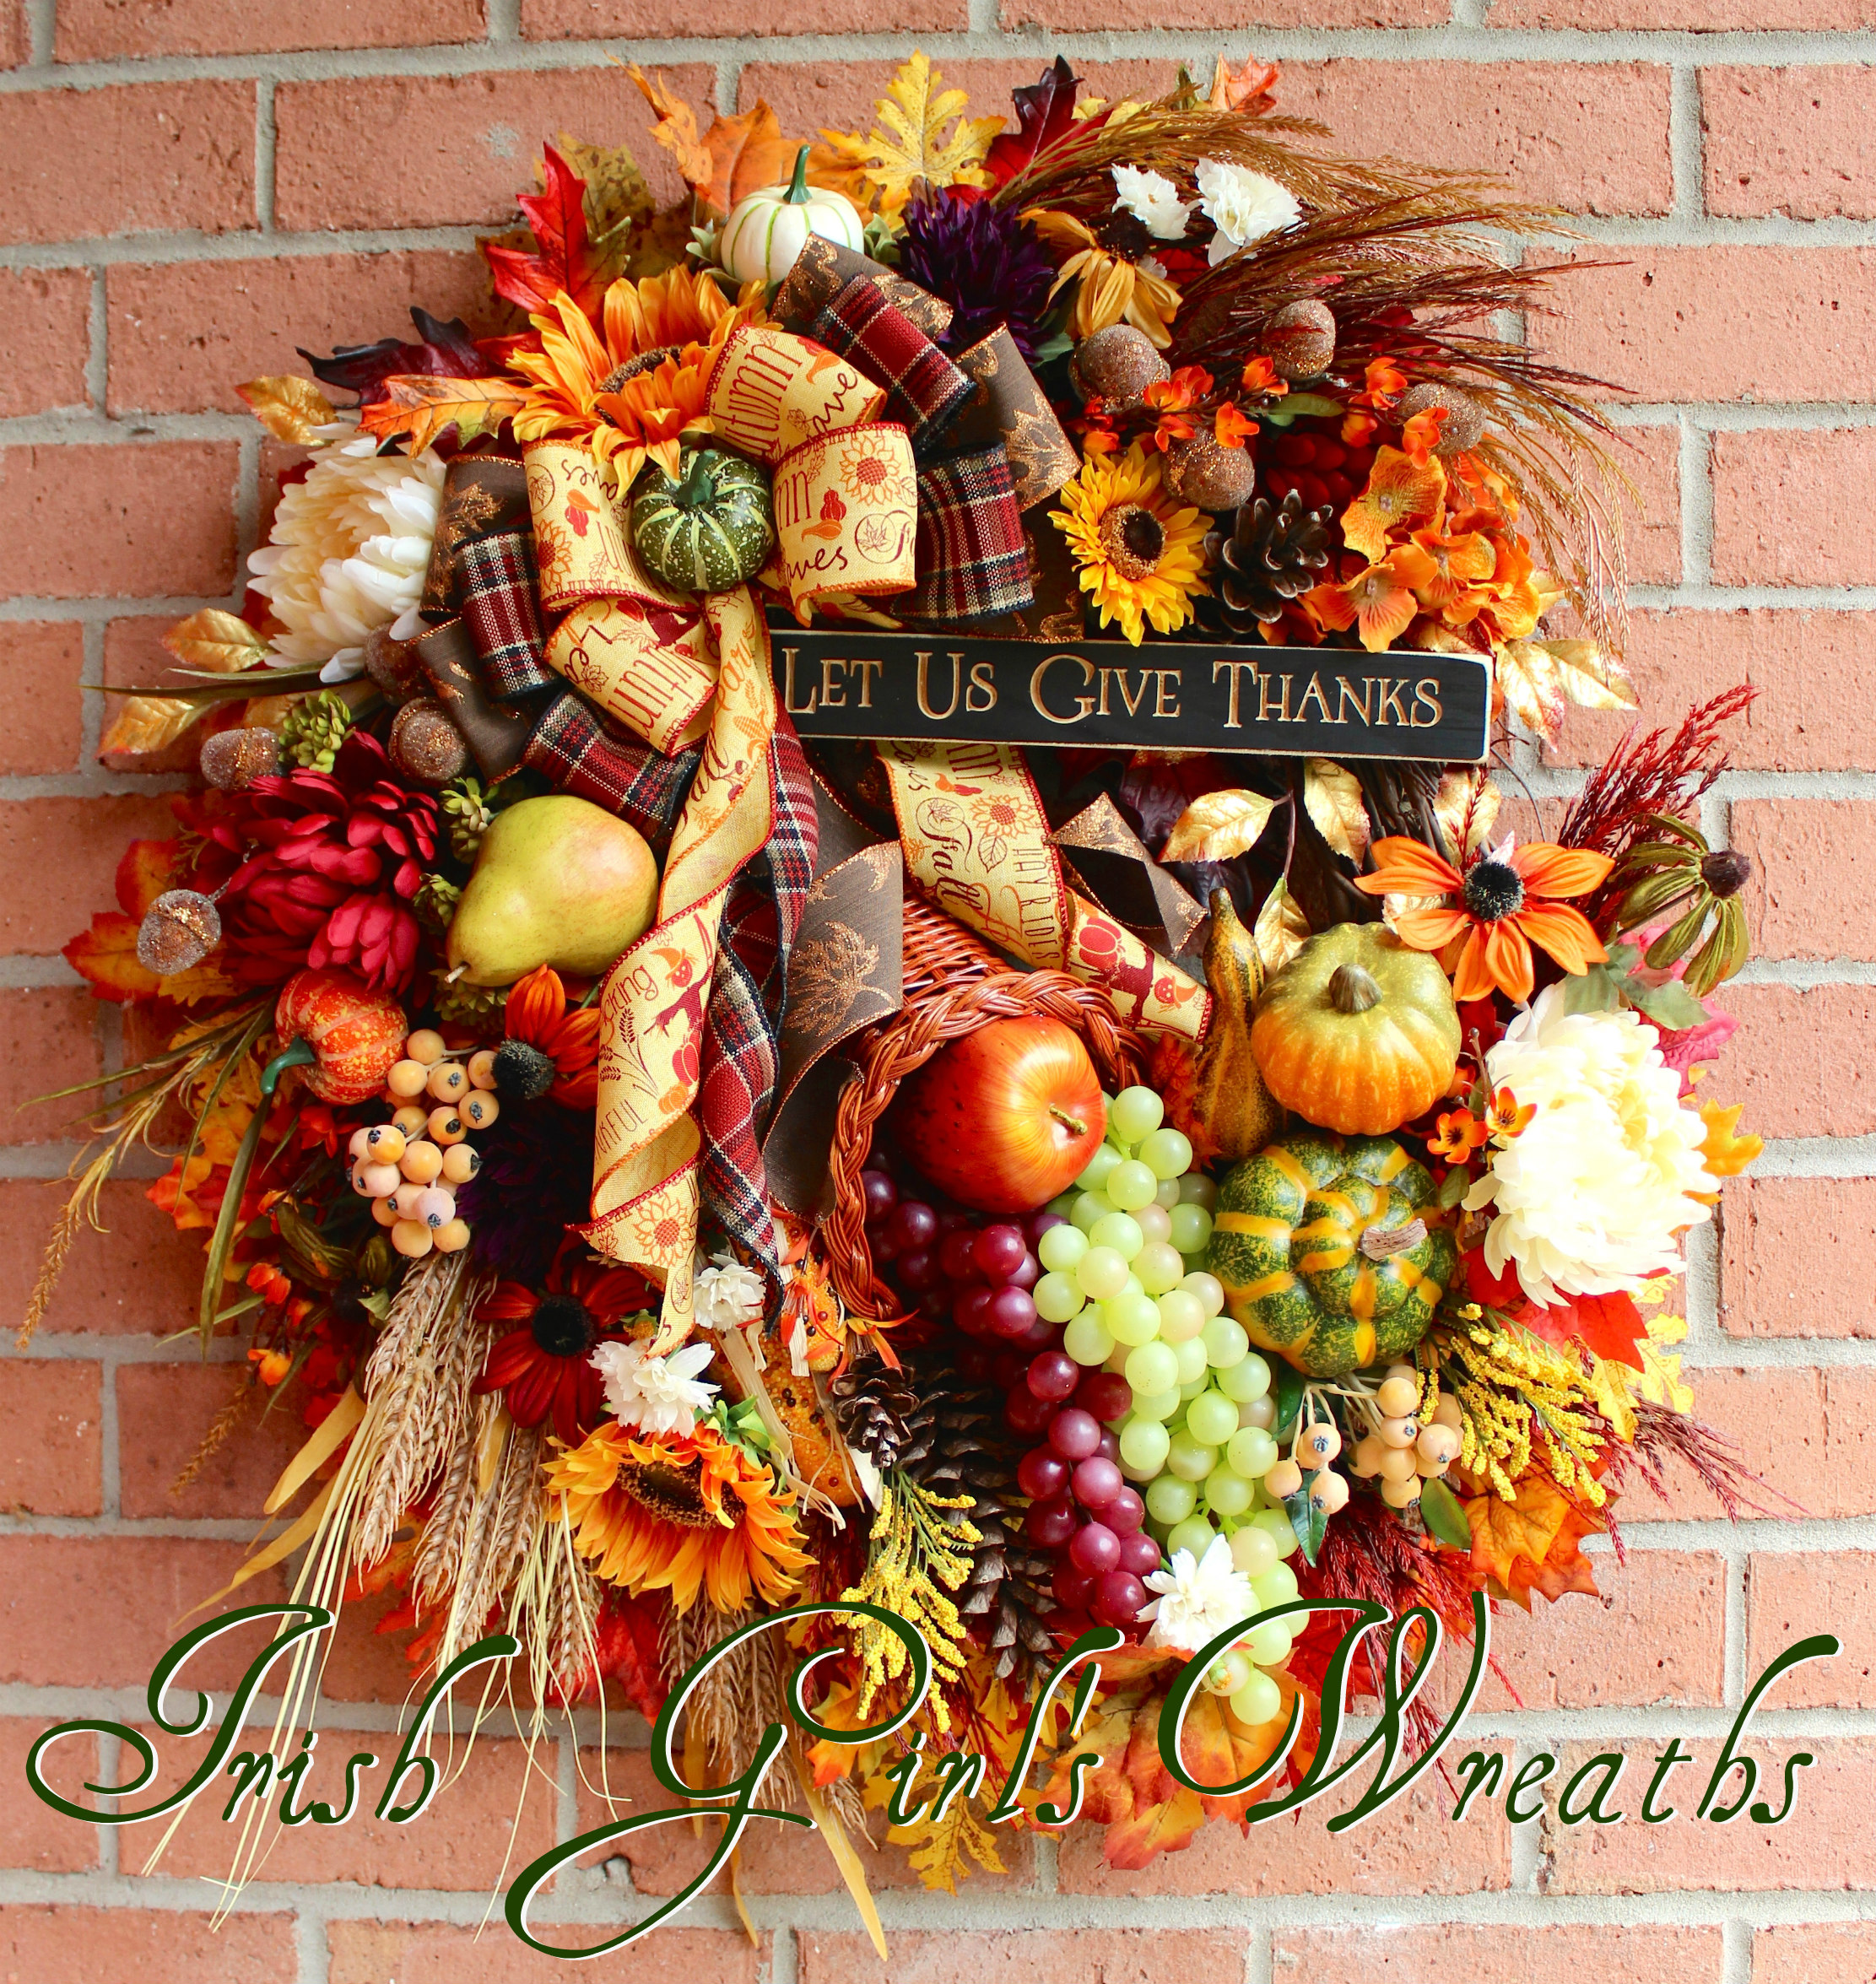 Give Thanks Cornucopia Wreath, Large Autumn Thanksgiving floral, Fall Wreath, Grapes, Pumpkins, Sunflowers